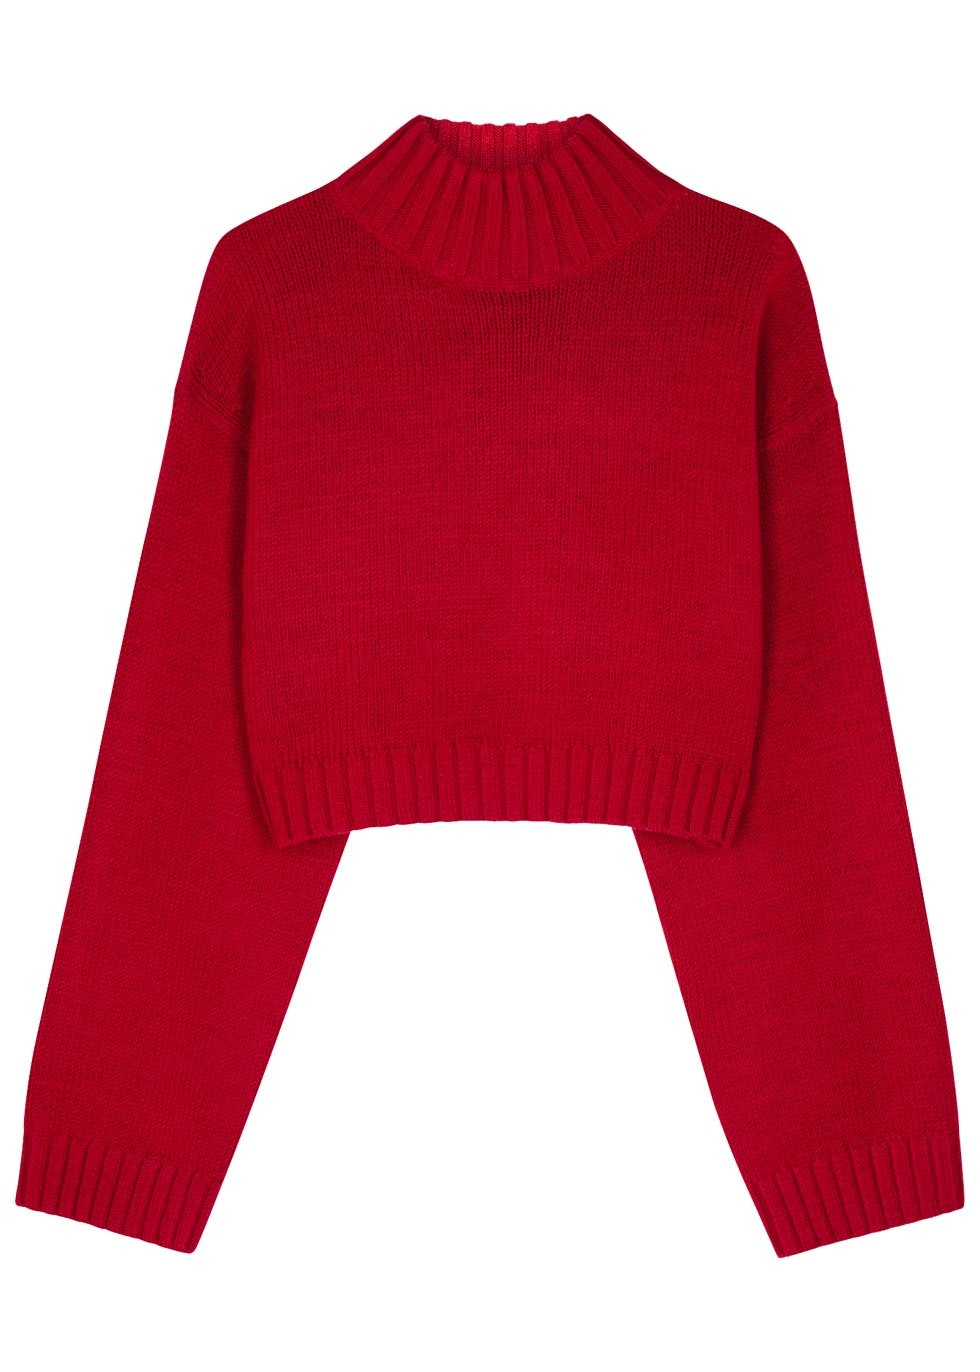 Red Cropped Wool Blend Jumper - pattern: plain; sleeve style: sleeveless; neckline: high neck; length: cropped; style: standard; predominant colour: true red; occasions: casual, creative work; fibres: wool - mix; fit: standard fit; sleeve length: 3/4 length; texture group: knits/crochet; pattern type: knitted - other; season: s/s 2016; wardrobe: highlight